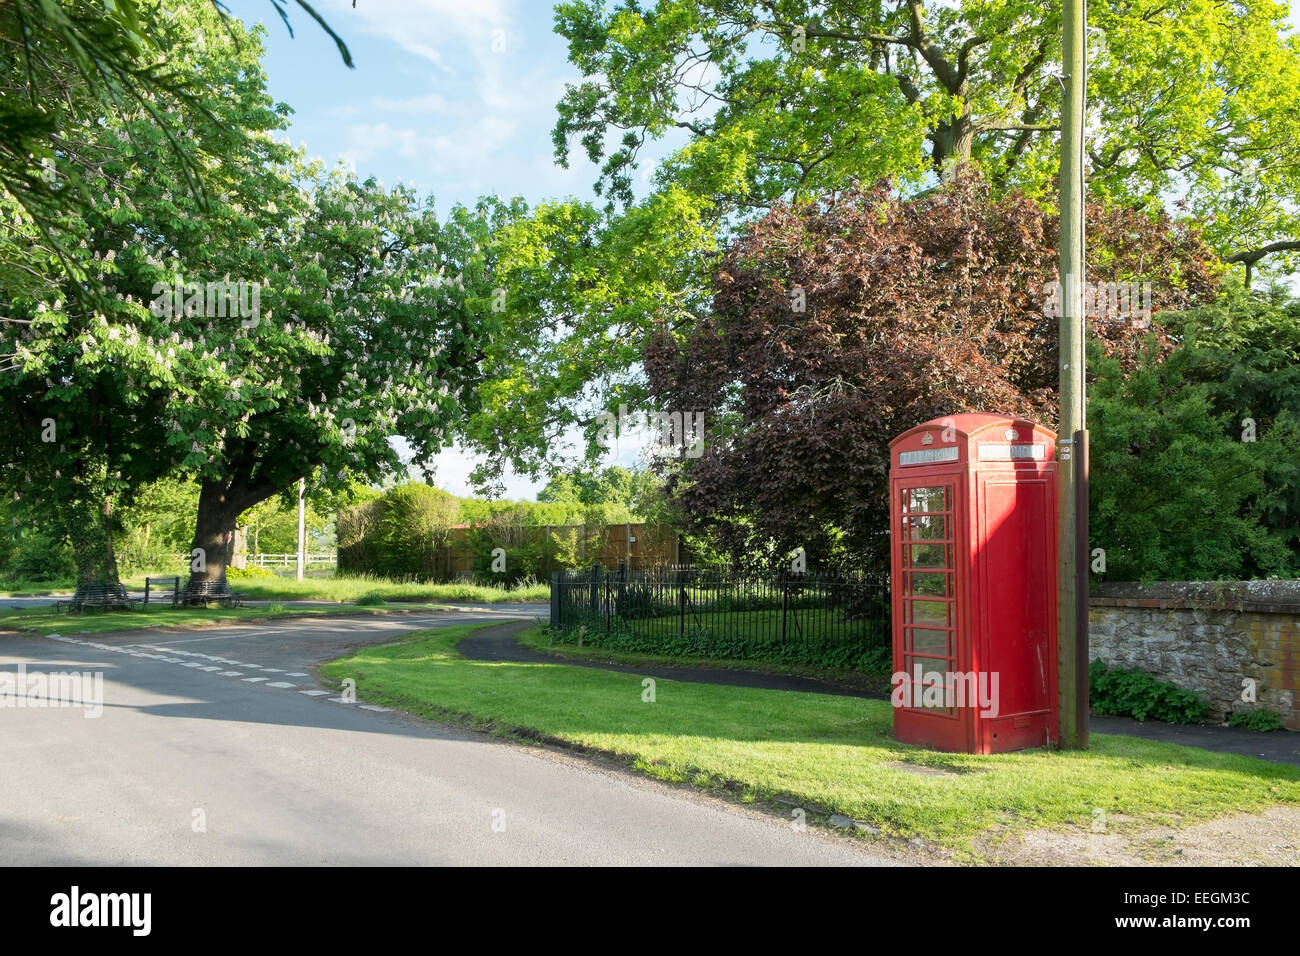 A traditional red telephone box in an English village. - Stock Image